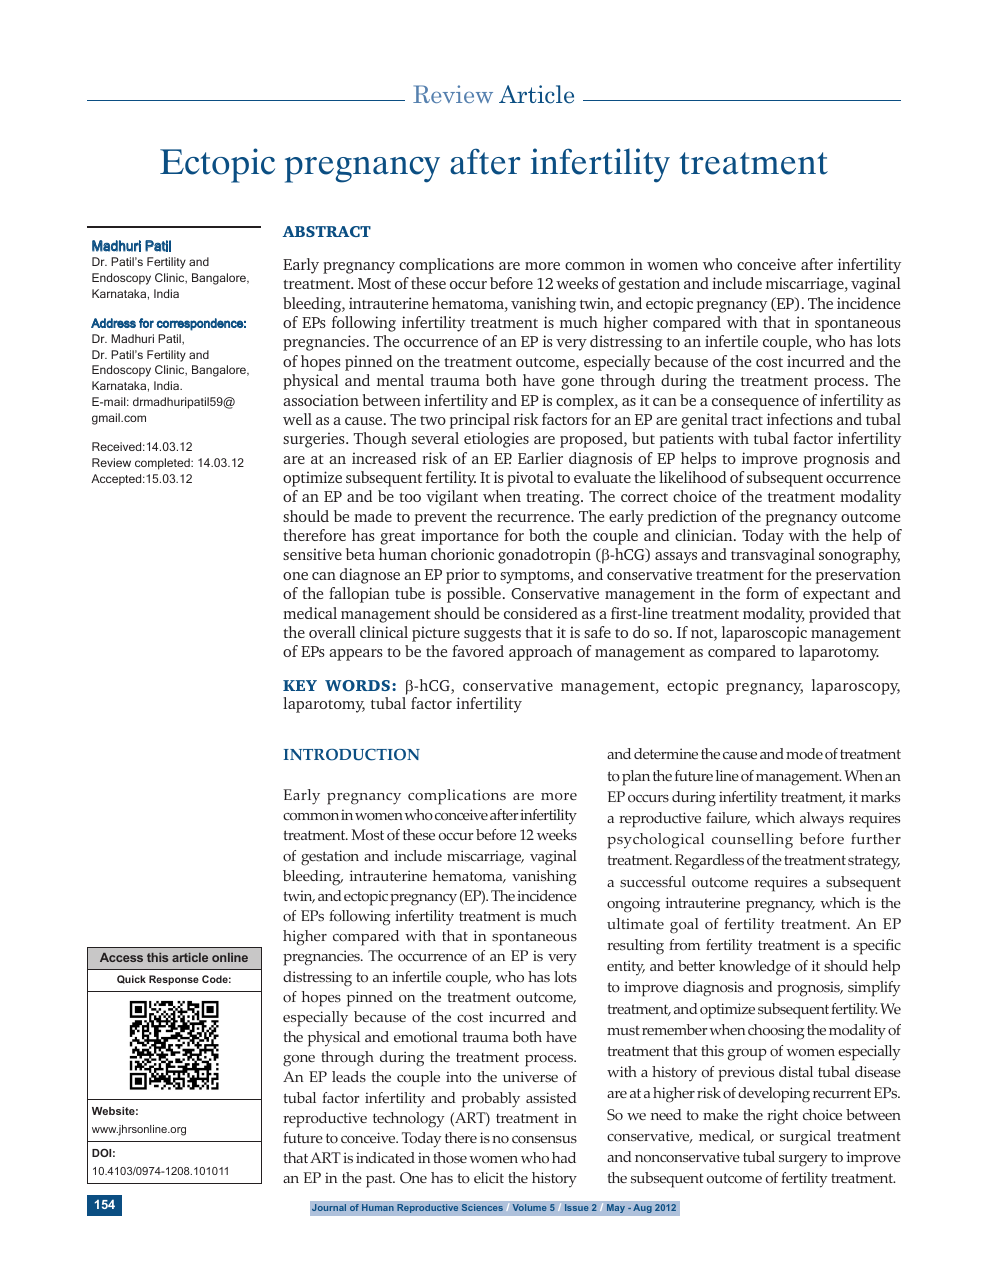 Ectopic pregnancy after infertility treatment – topic of